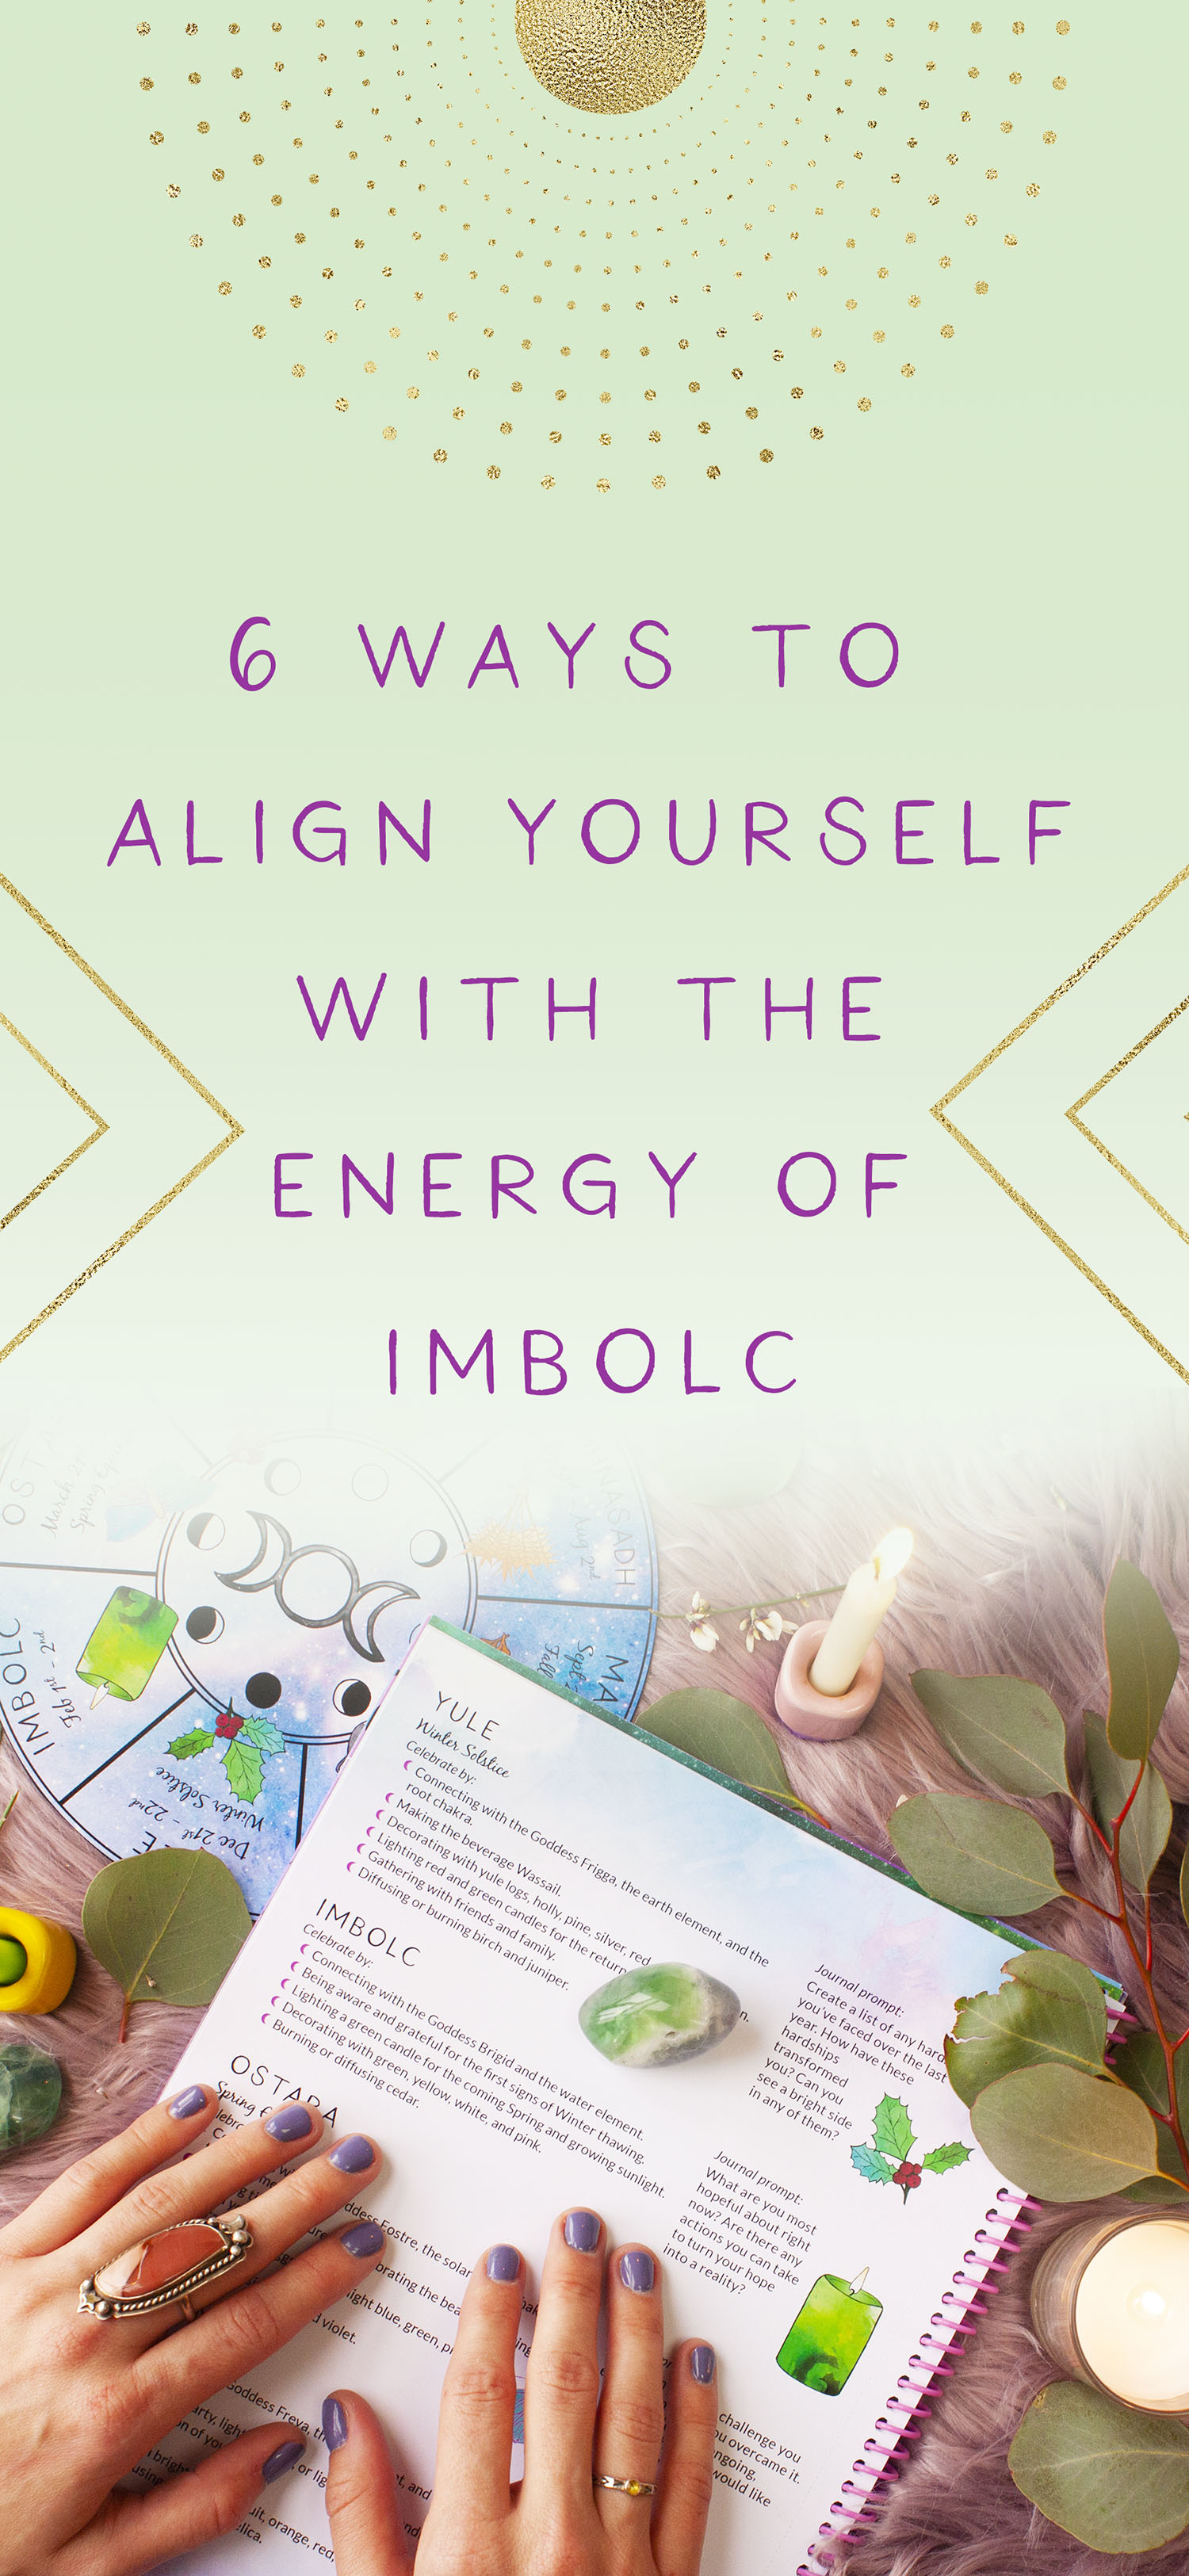 6-ways-to-align-yourself-with-the-energy-of-imbolc-imbolc-rituals-how-to-honor-imbolc